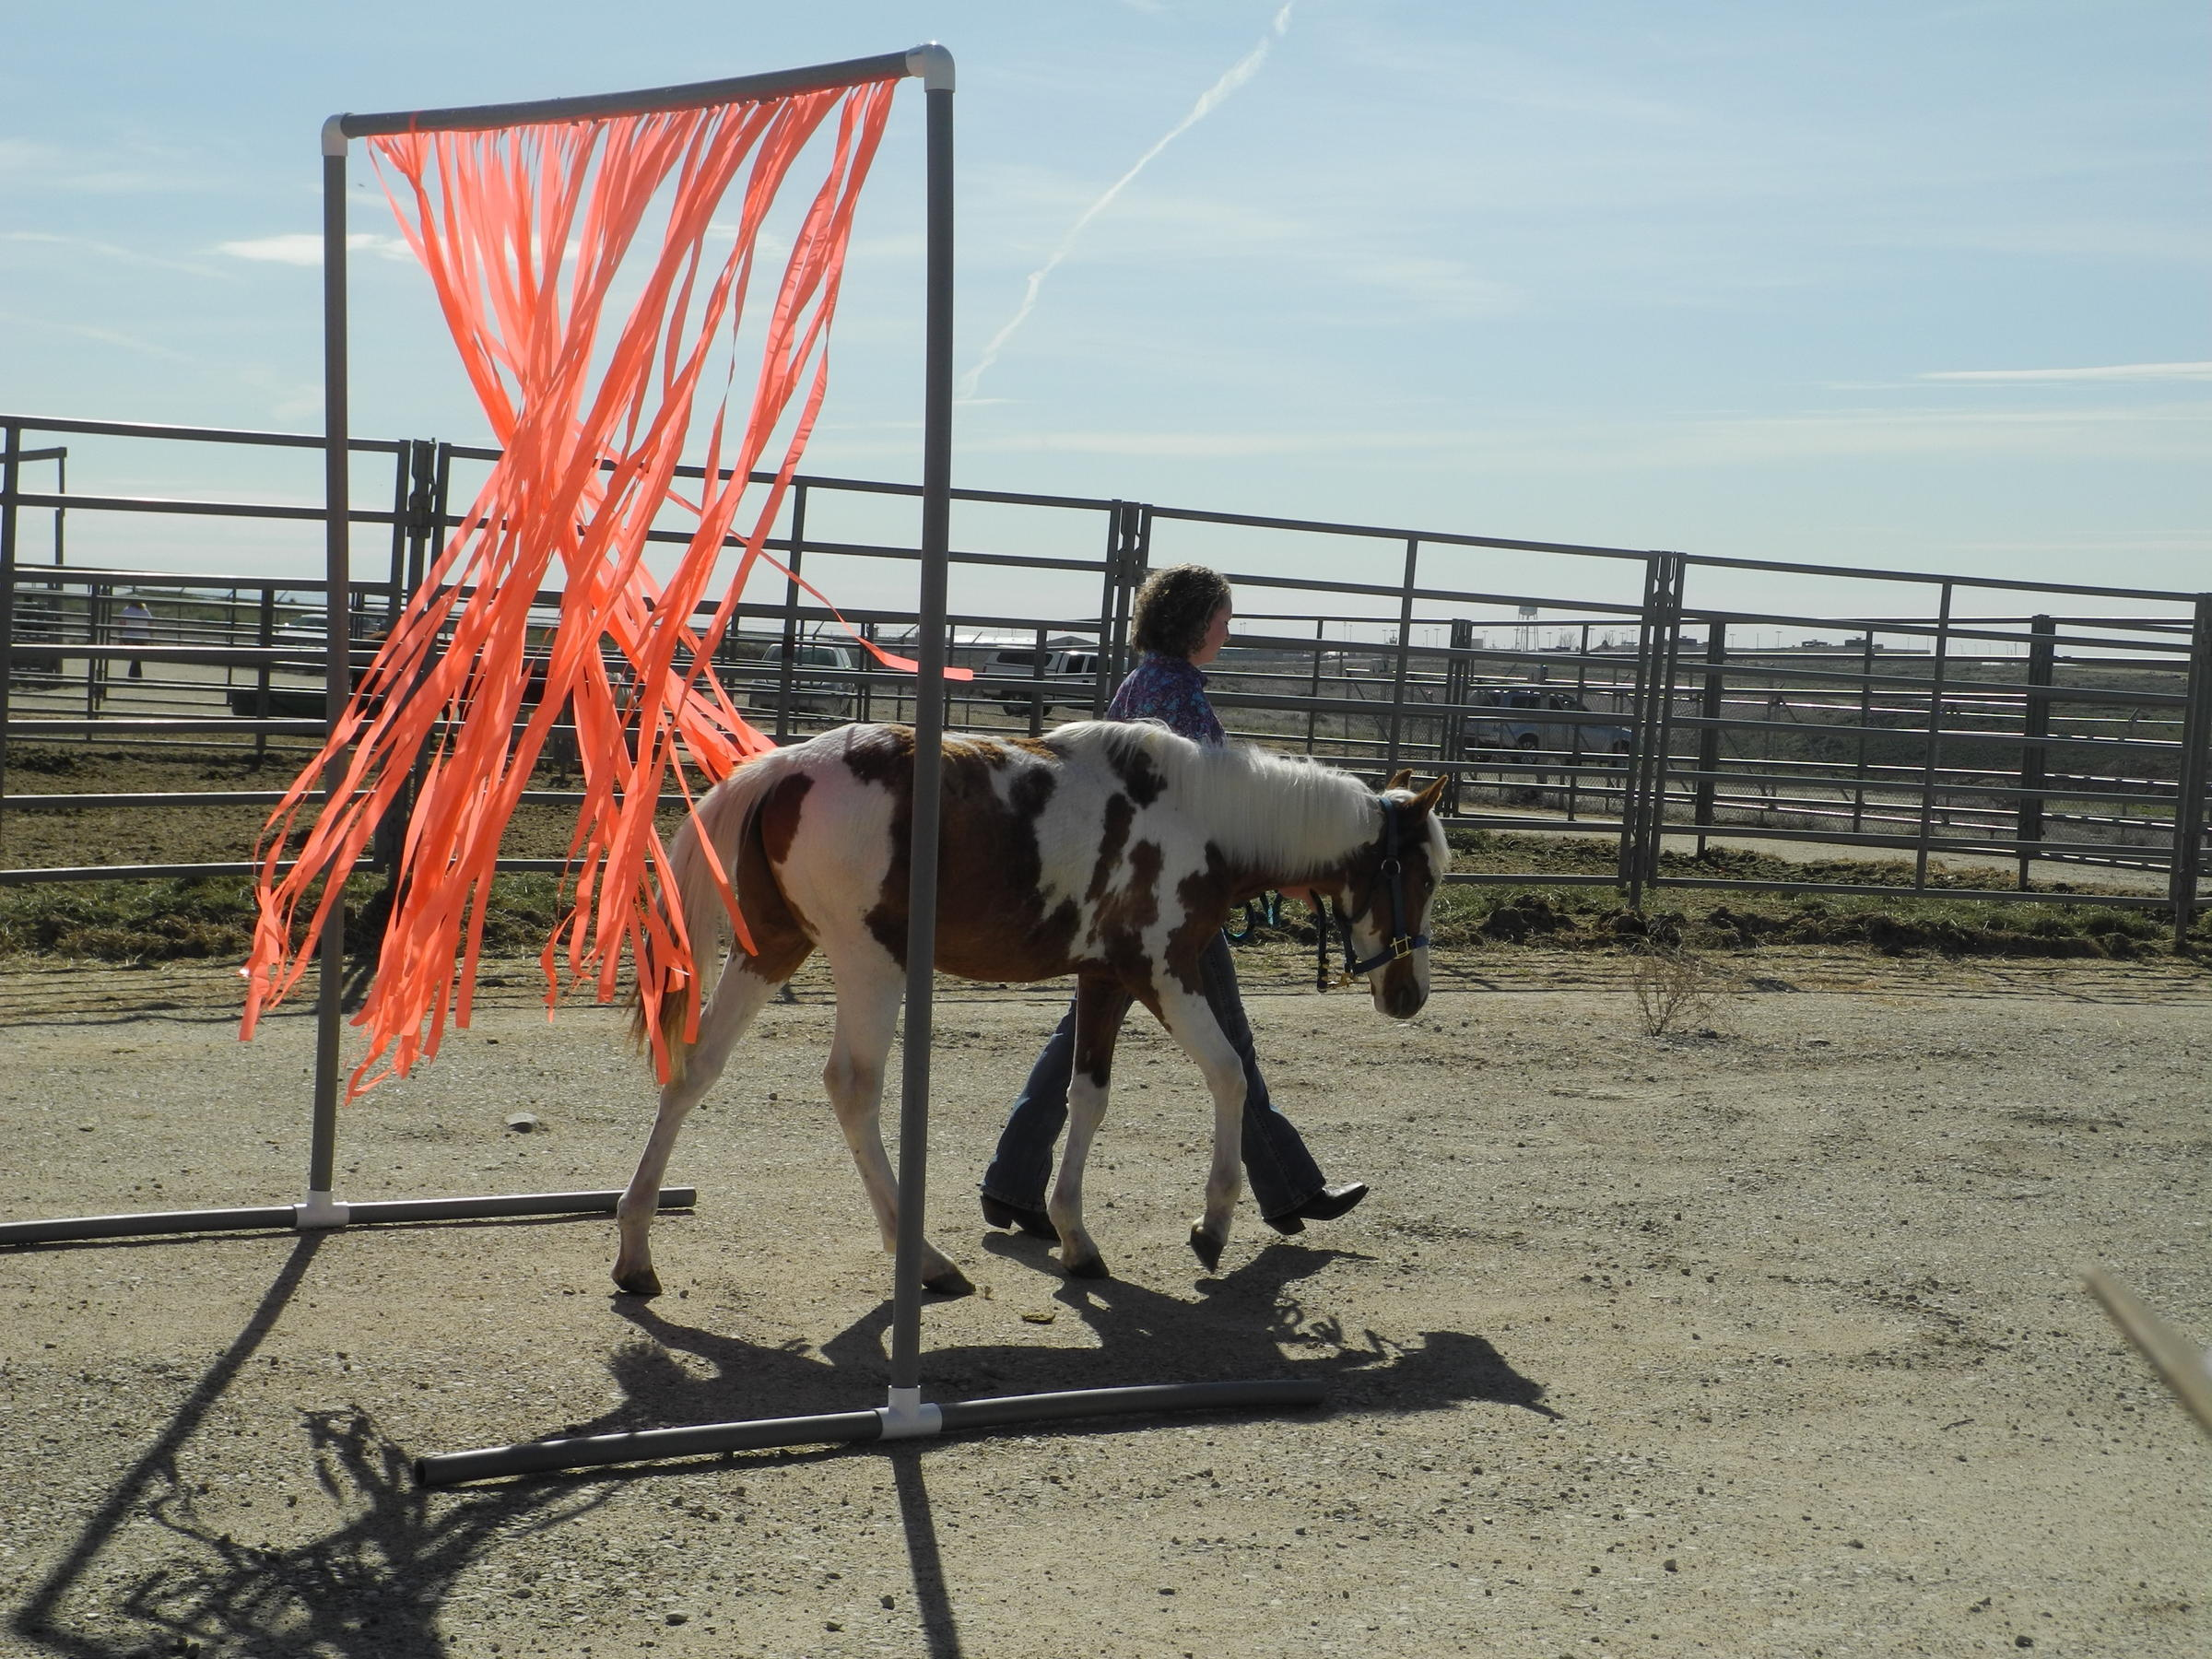 A 4 H Student Leads Wild Horse Through Training Course At The Blm Boise Corral In 2016